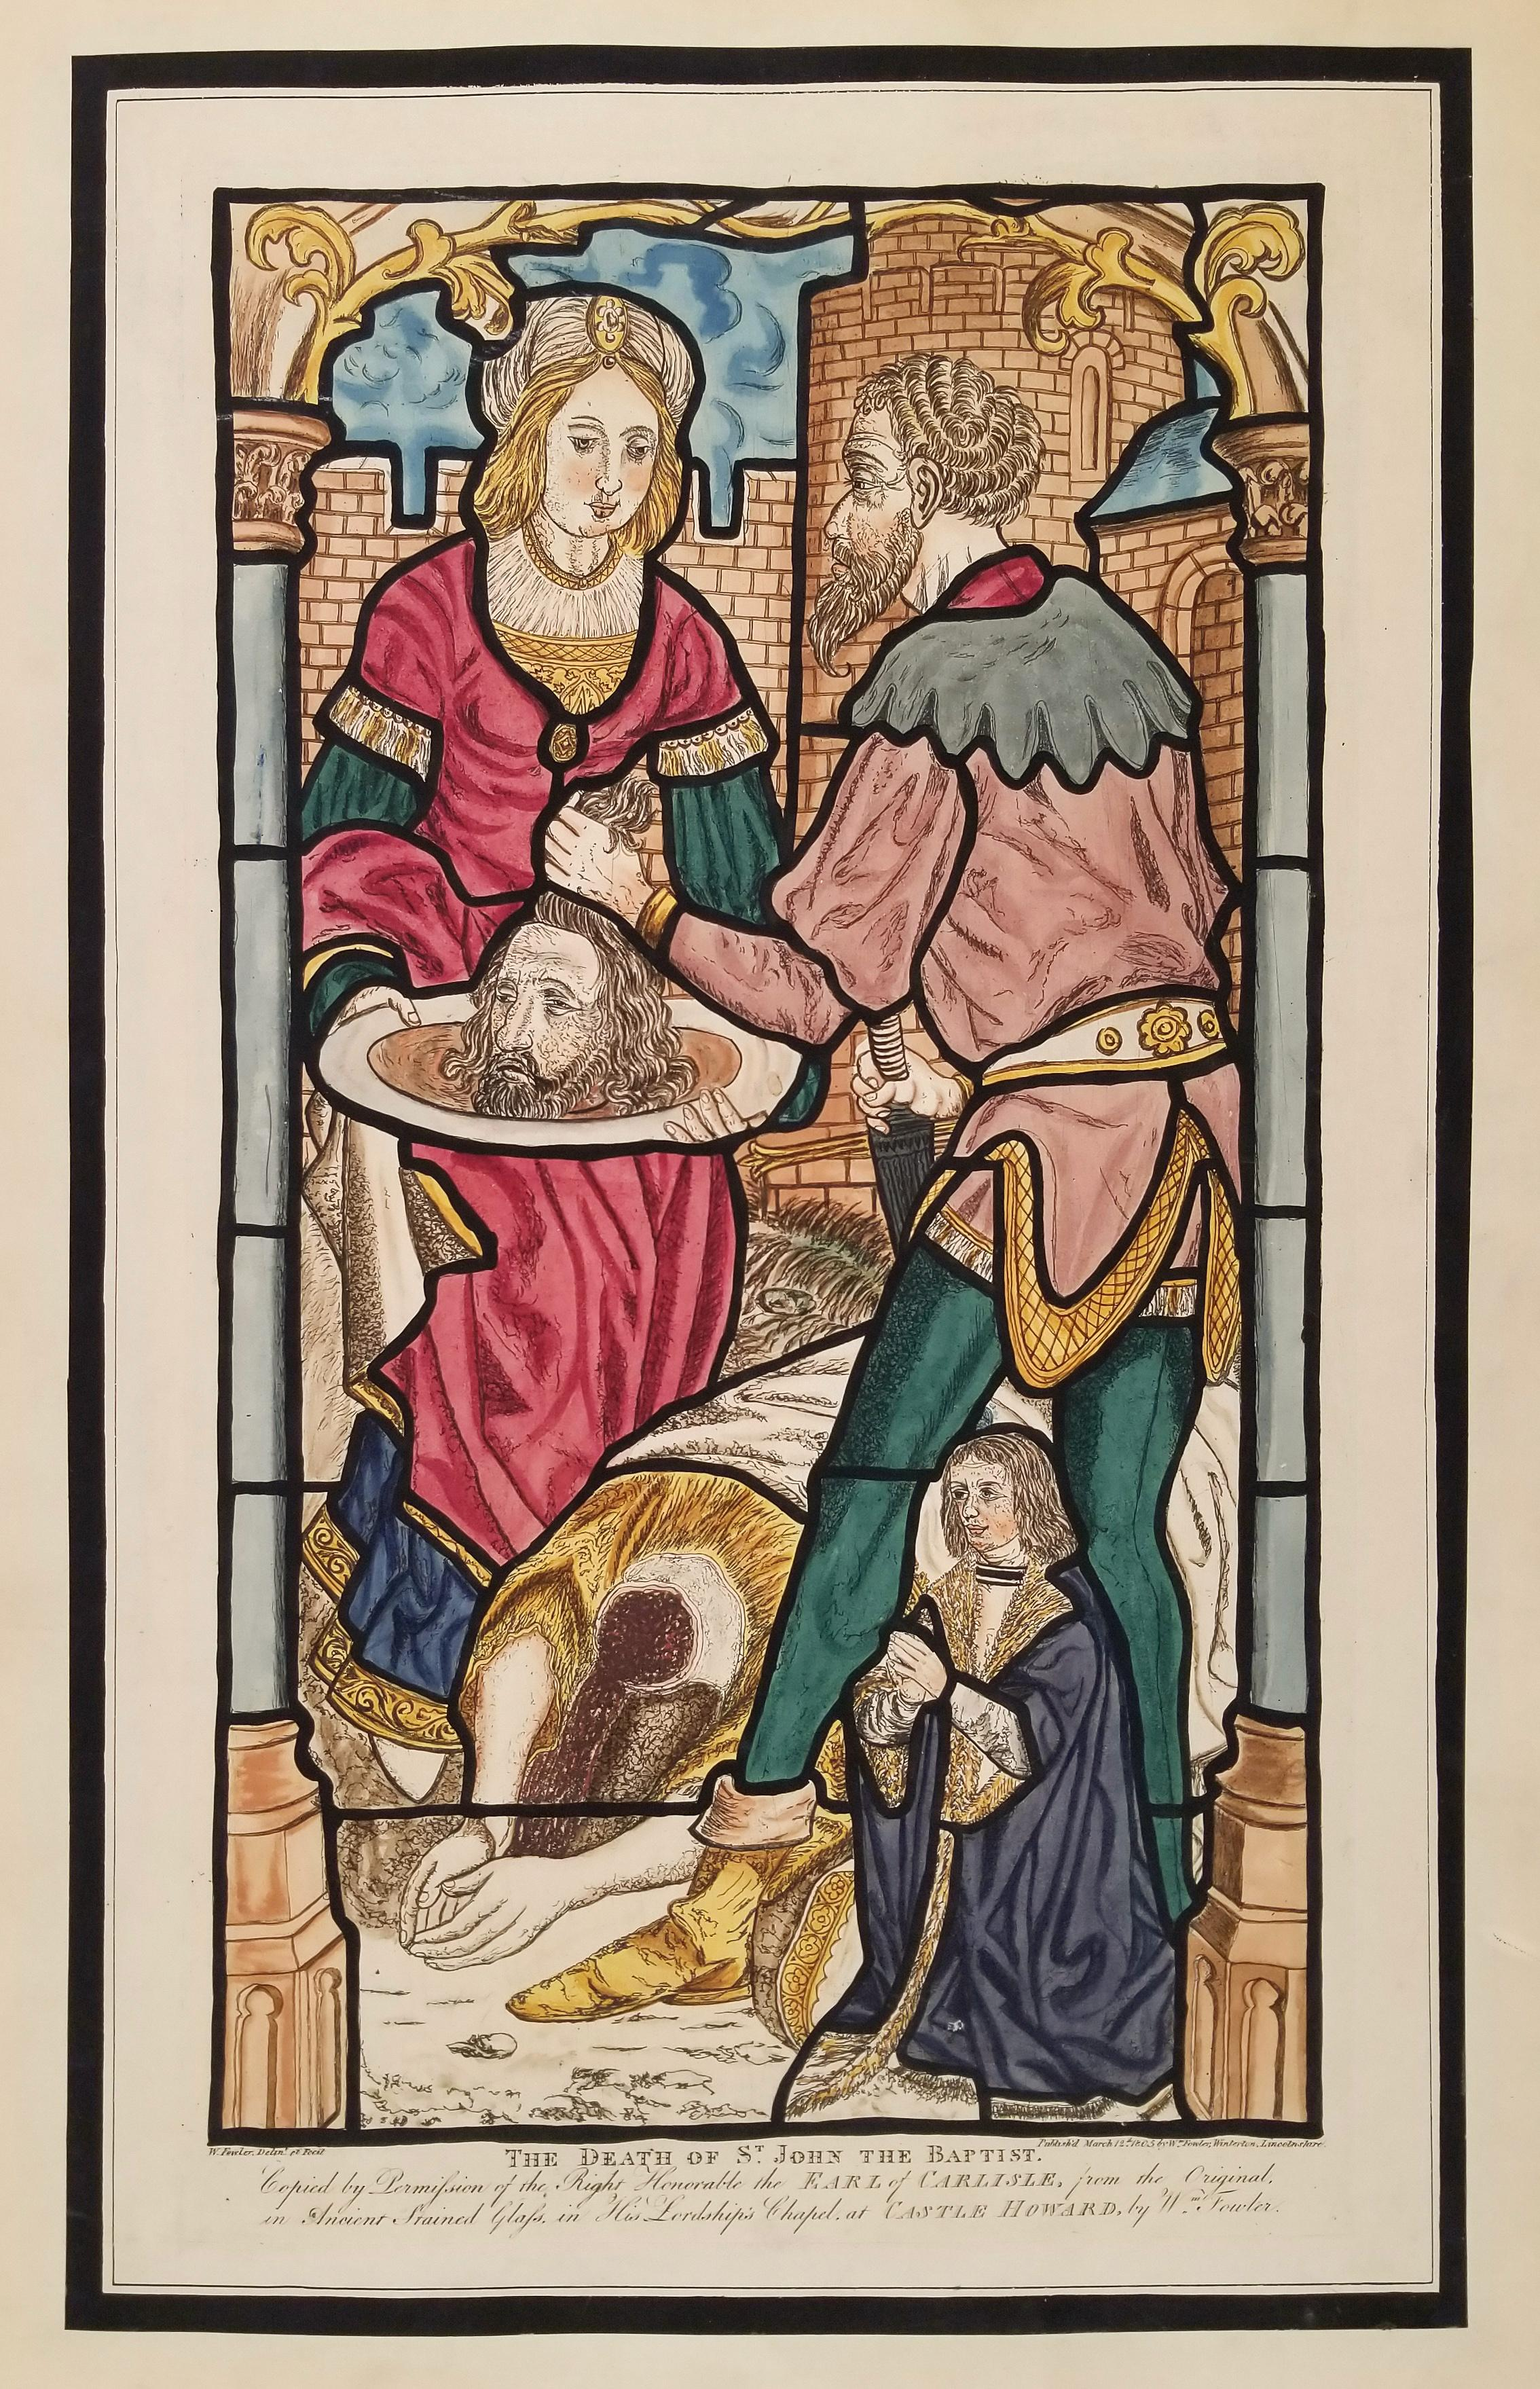 William Fowler Engraving after Stained Glass of the Death of John the Baptist